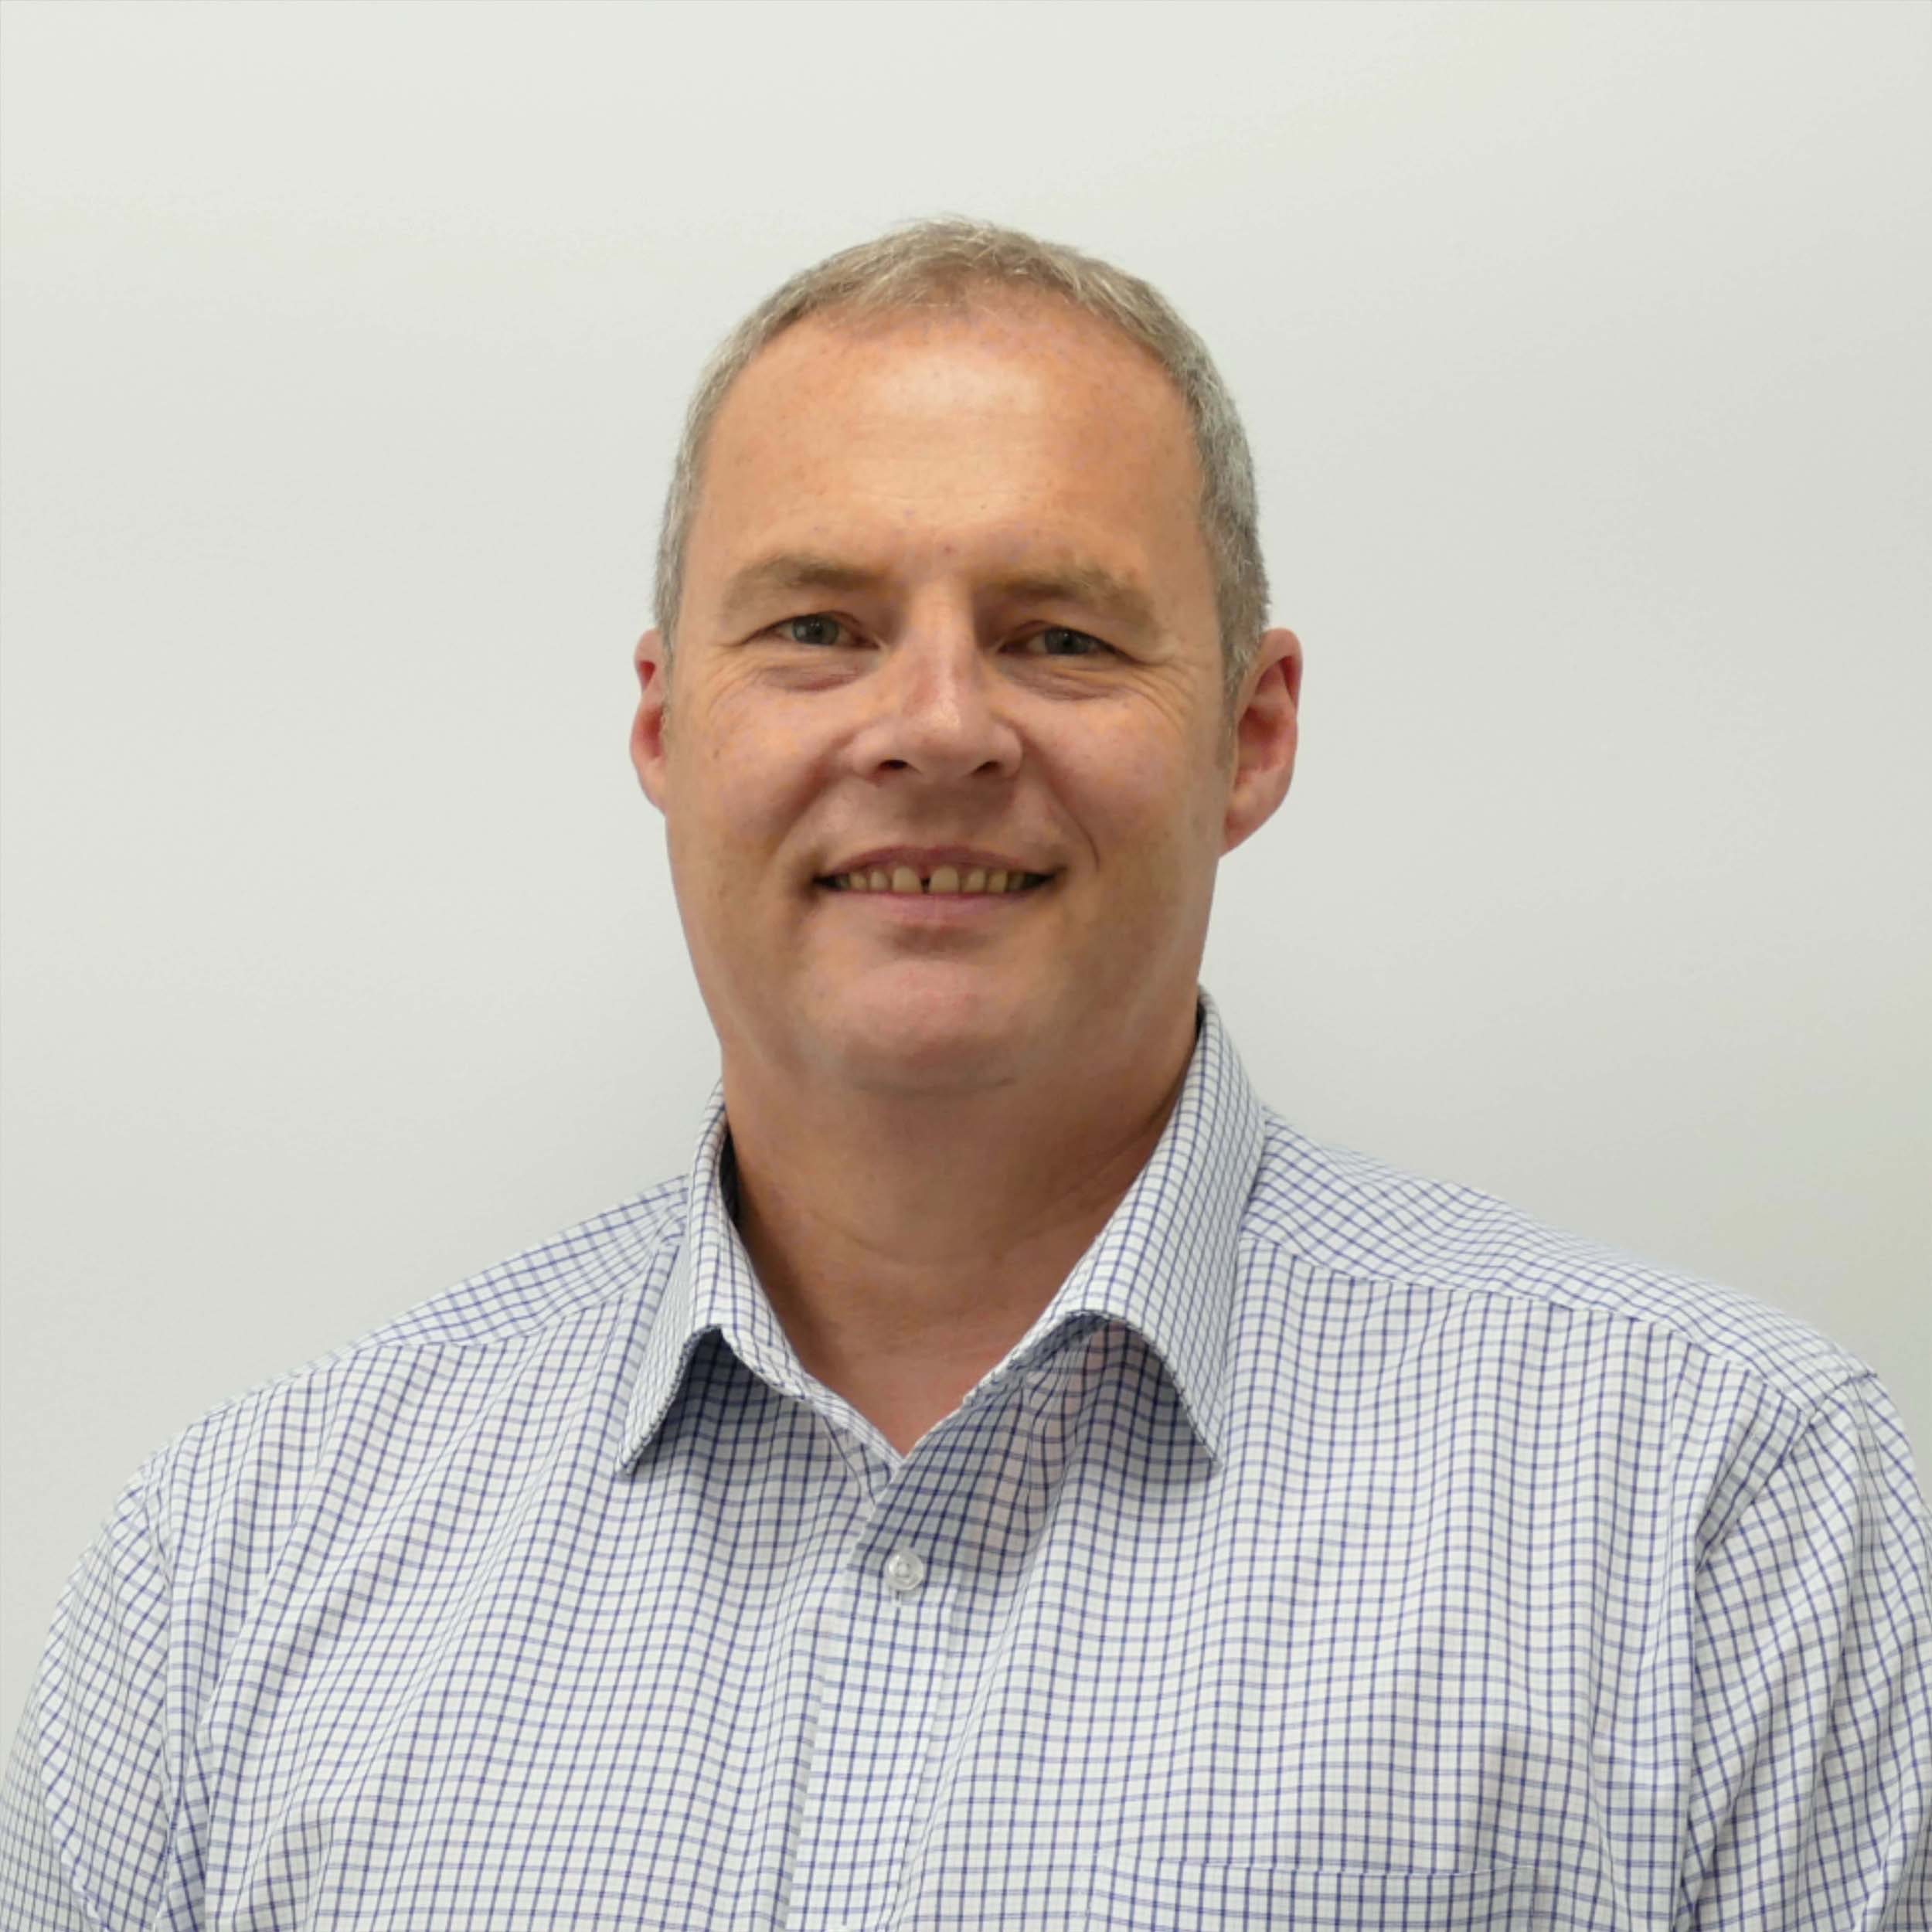 Rolawn appoints new Head of Warehousing and Distribution